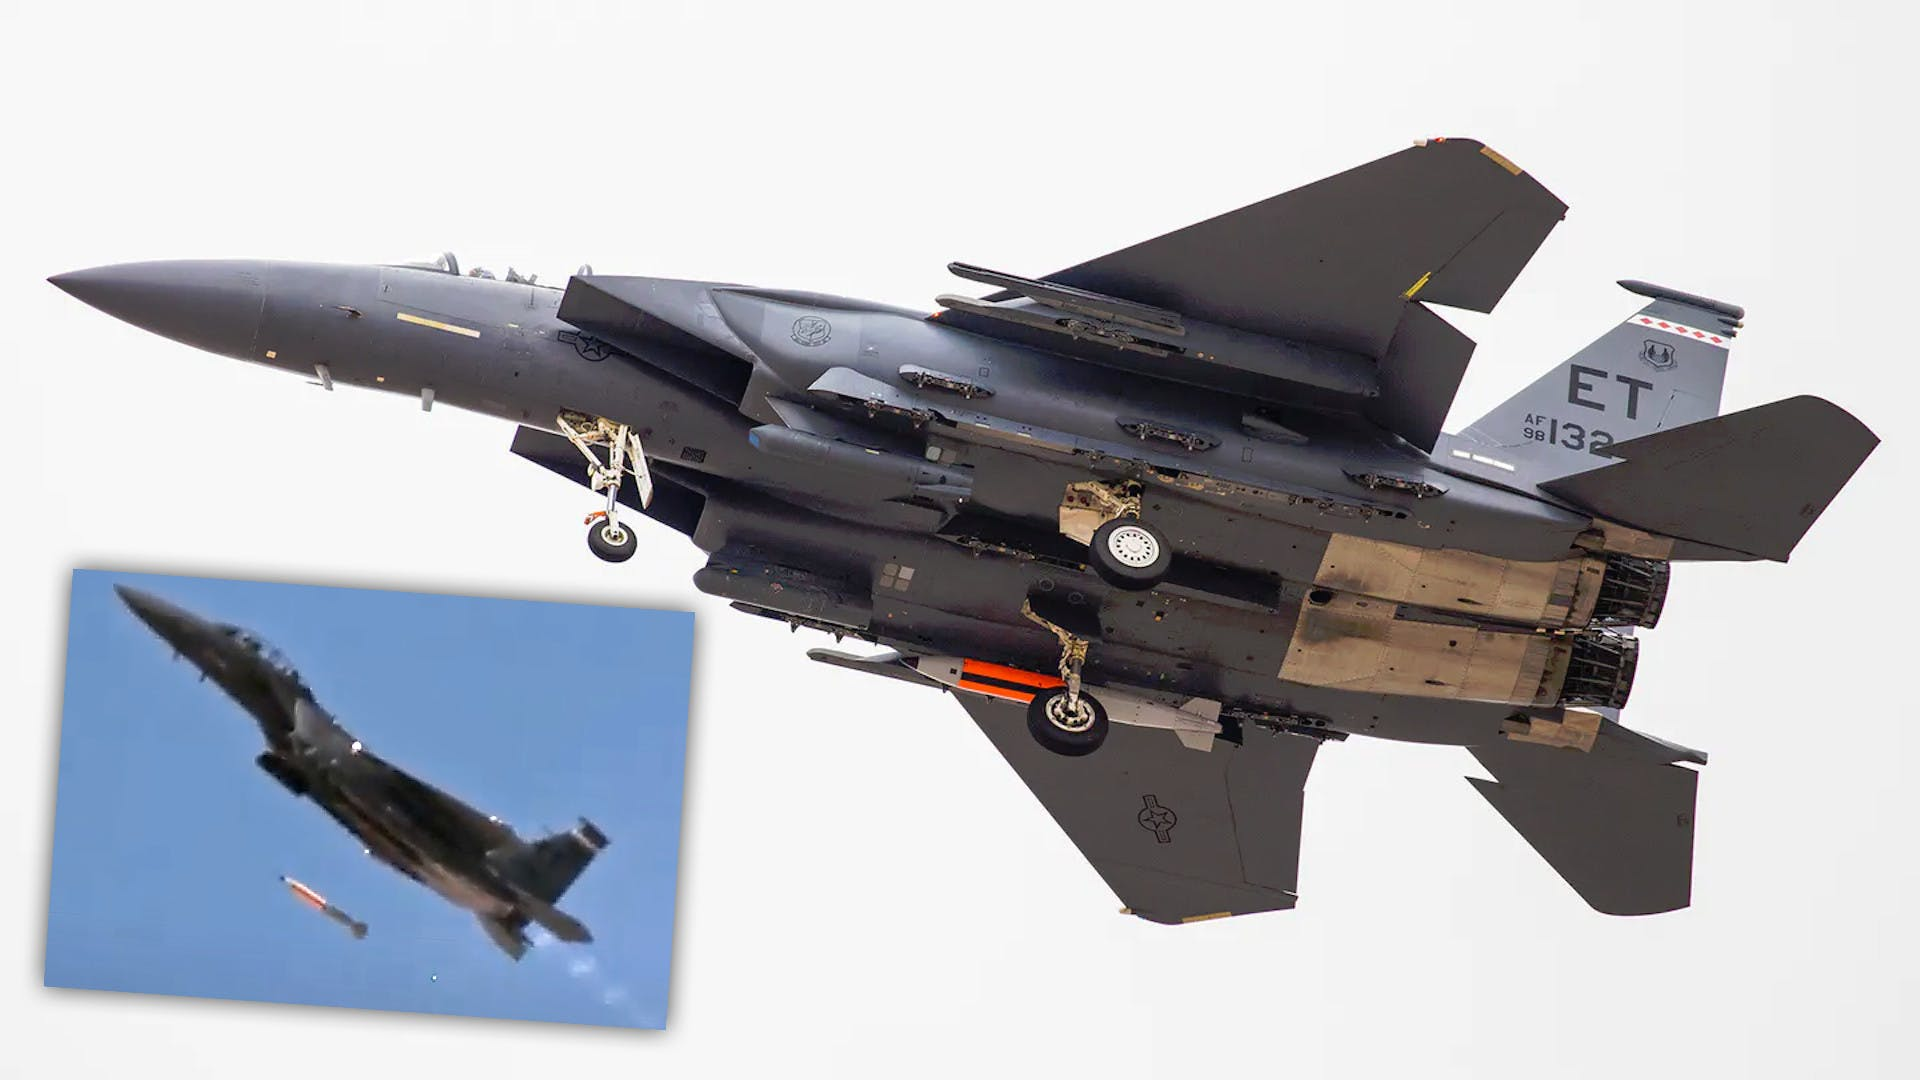 U.S. Successfully Tests Its New B61-12 Nuclear Gravity Bomb On F-15E Strike Eagle Jet